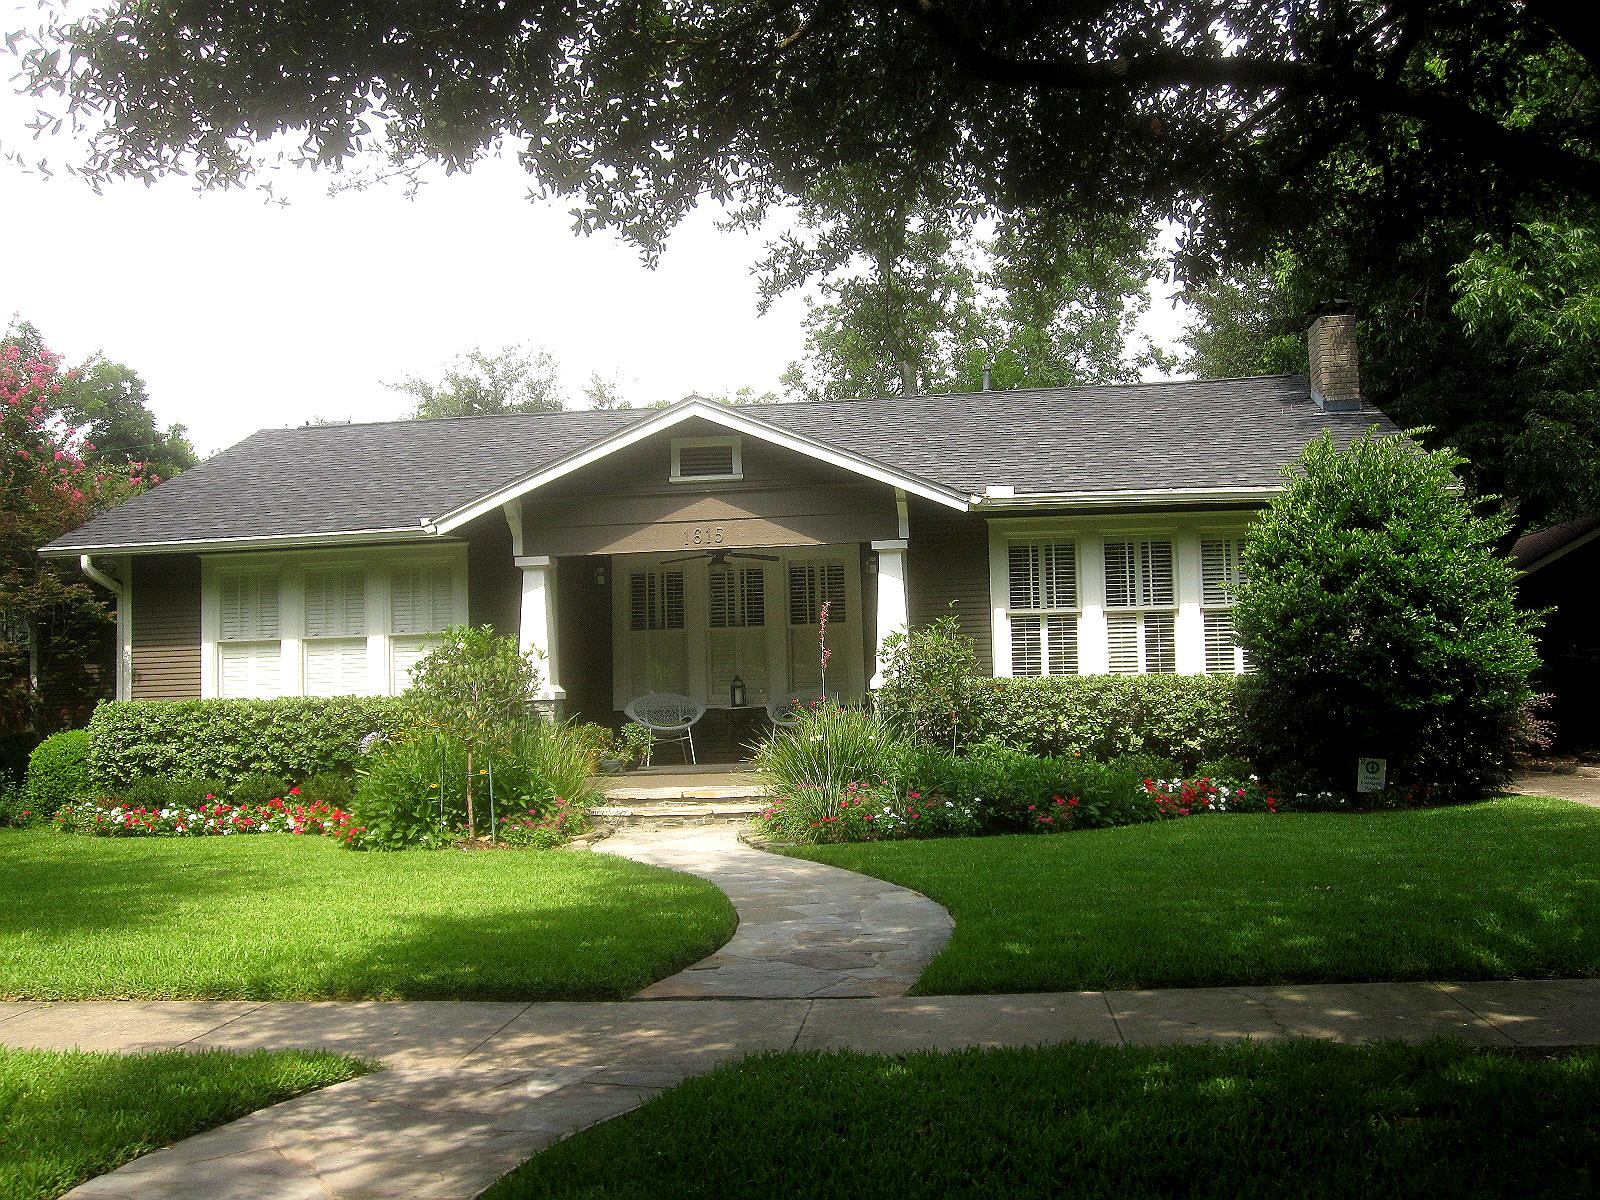 The other houston bungalow front yard garden ideas for Garden design front of house